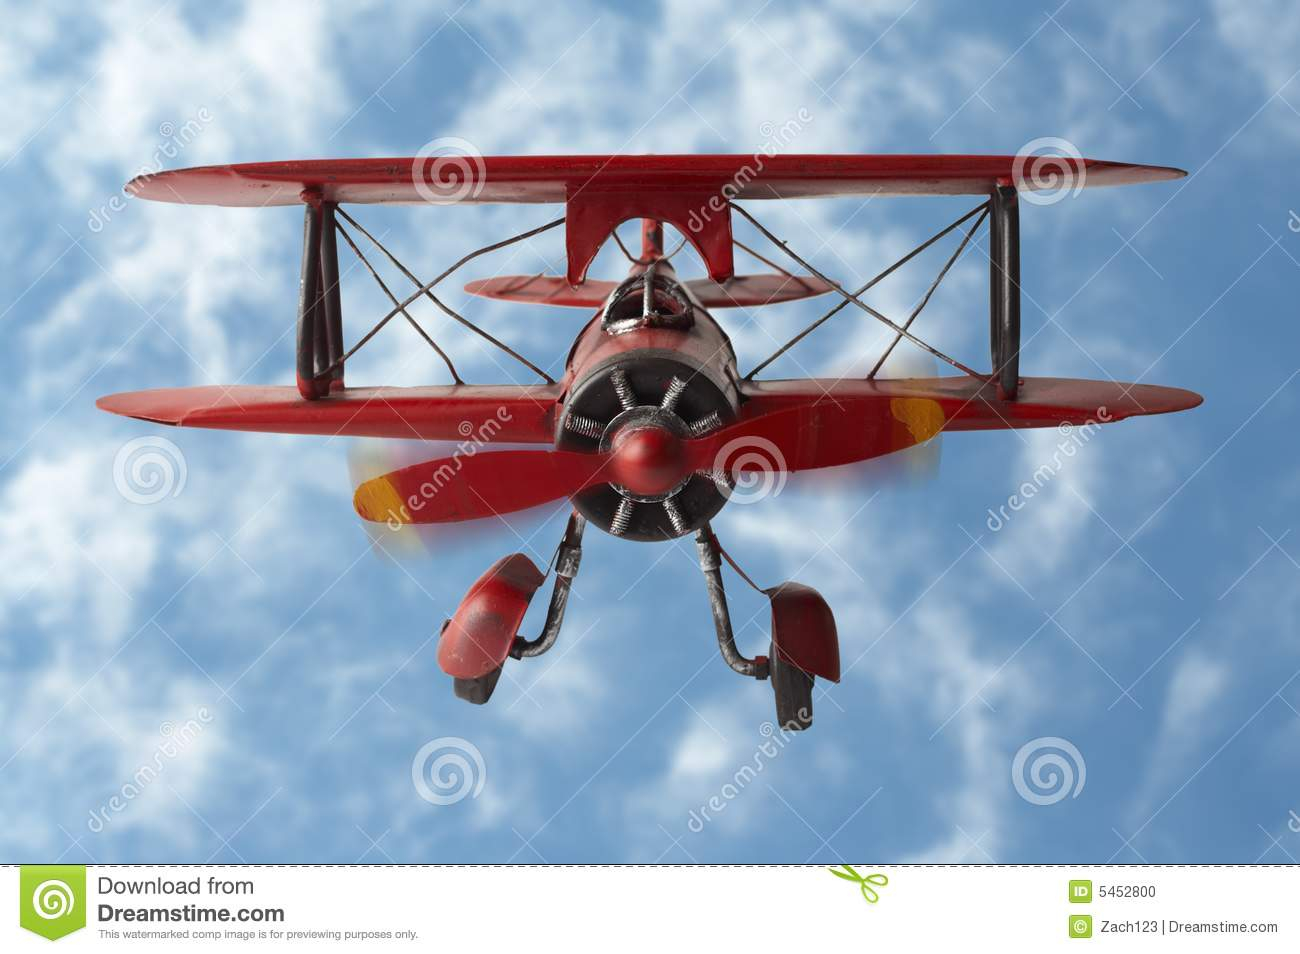 Stock Photo of a model plane